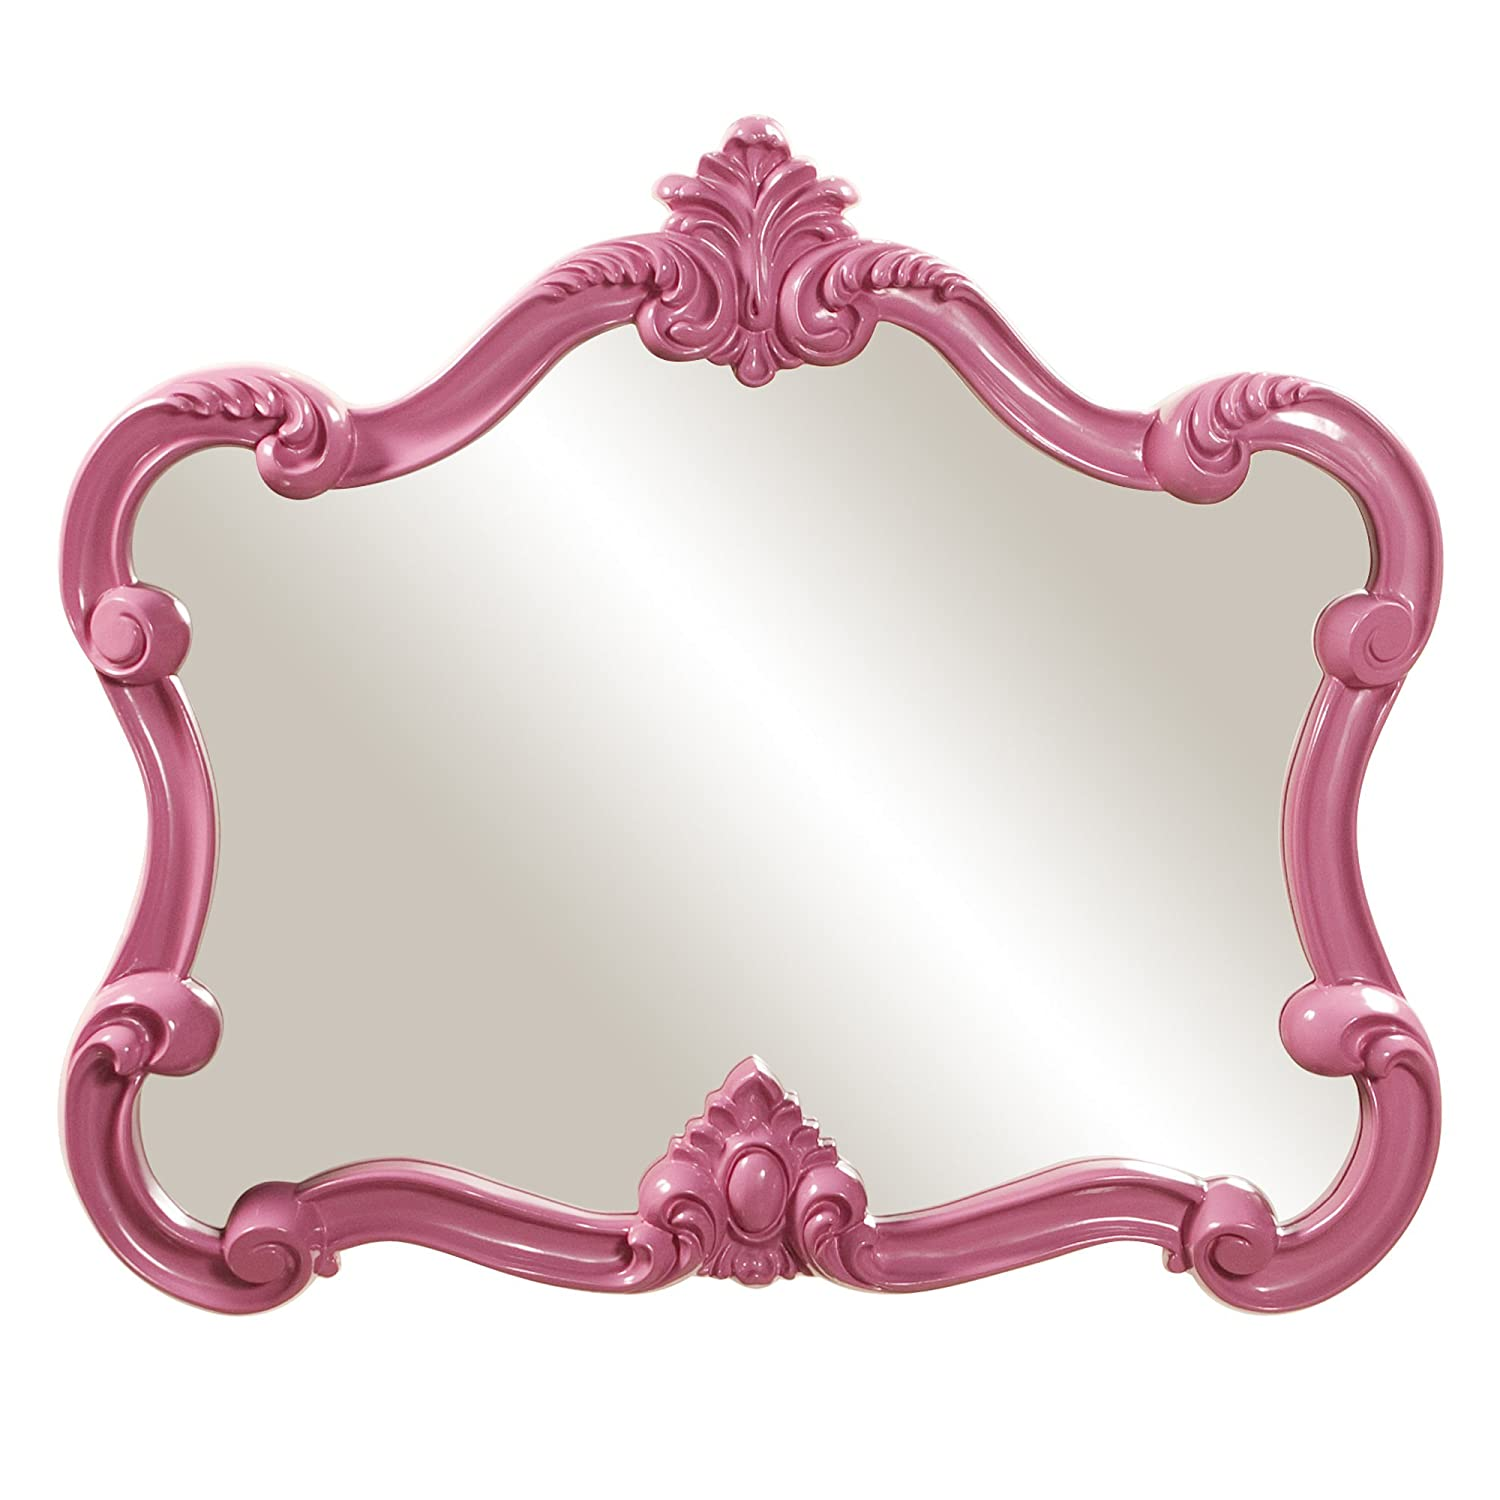 Amazon howard elliott 56030 veruca rectangular mirror 28 x amazon howard elliott 56030 veruca rectangular mirror 28 x 32 inch glossy hot pink home kitchen amipublicfo Gallery